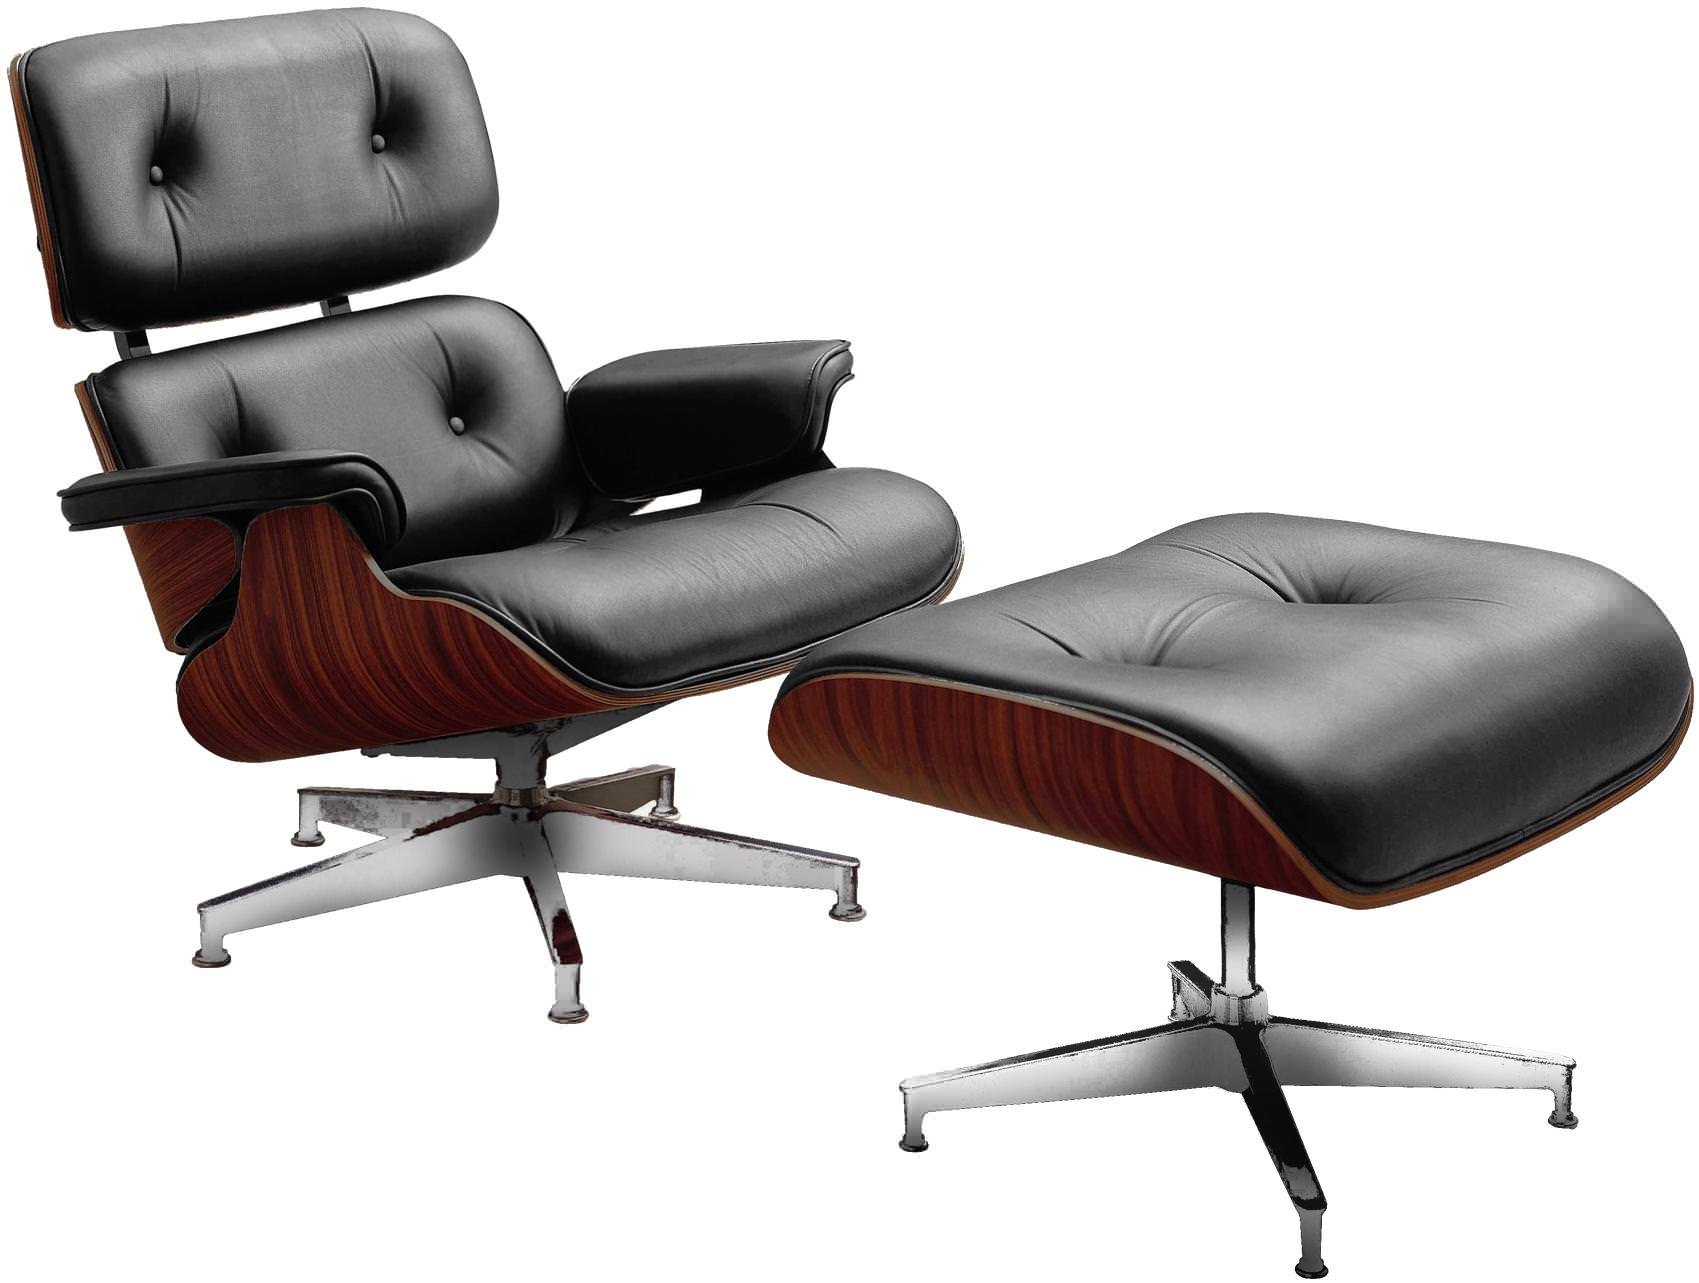 Image of: Eames Lounge Chair For Sale